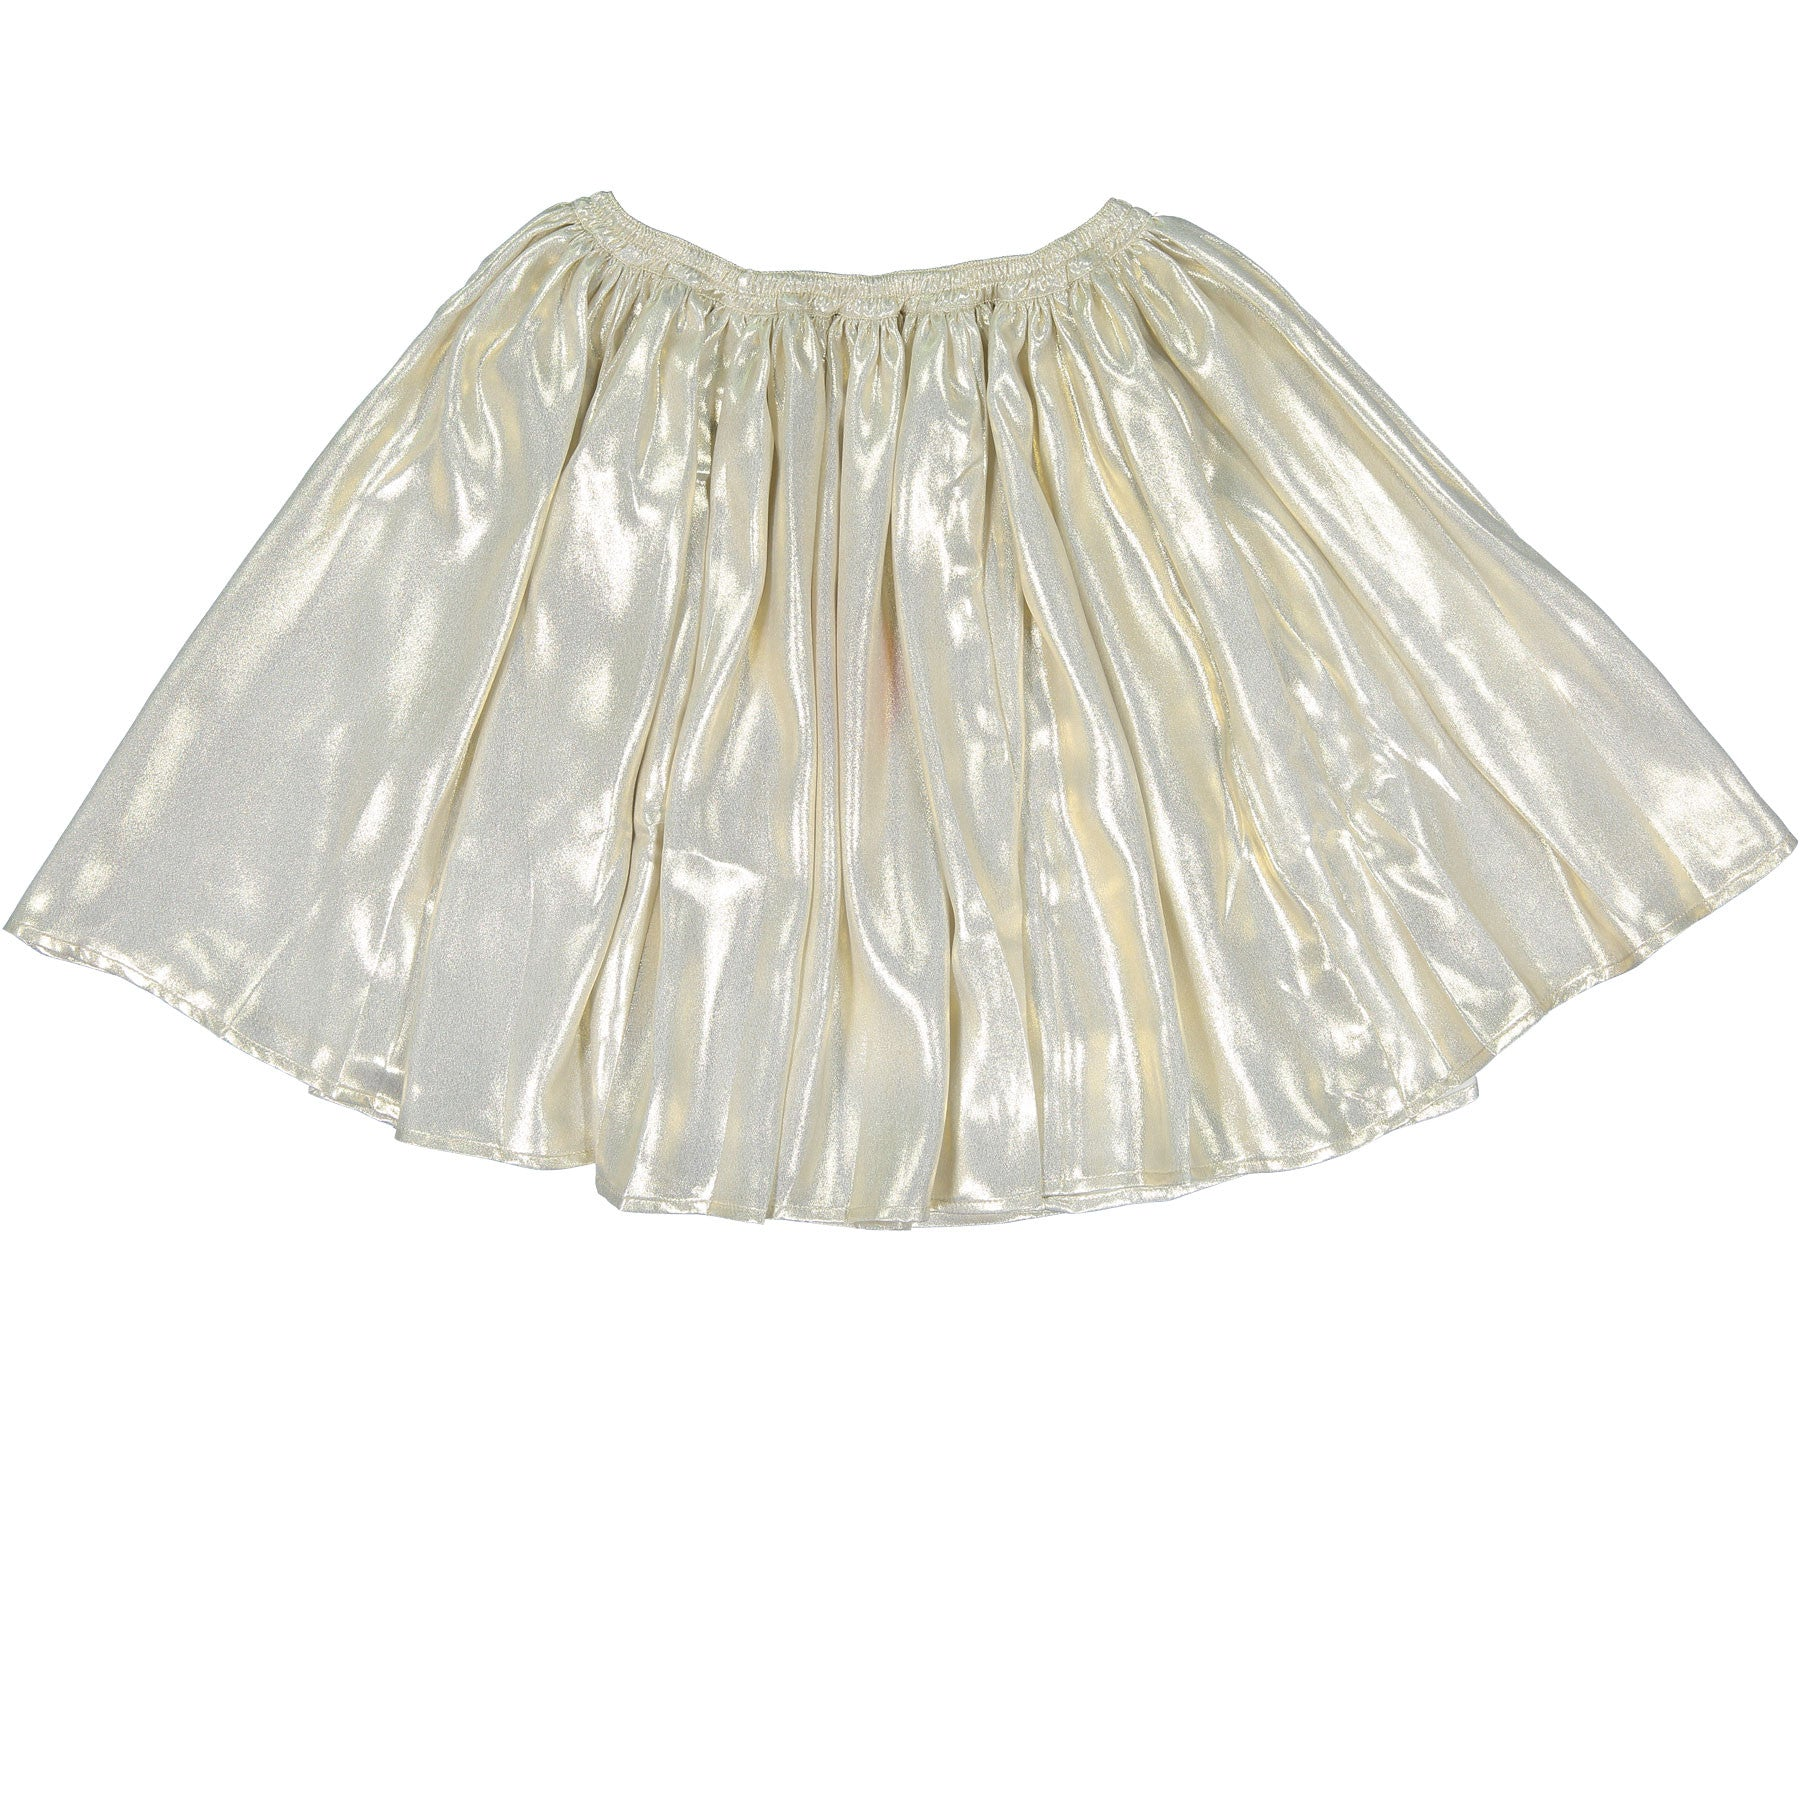 Maan Thin Gold Flared Skirt - Ladida